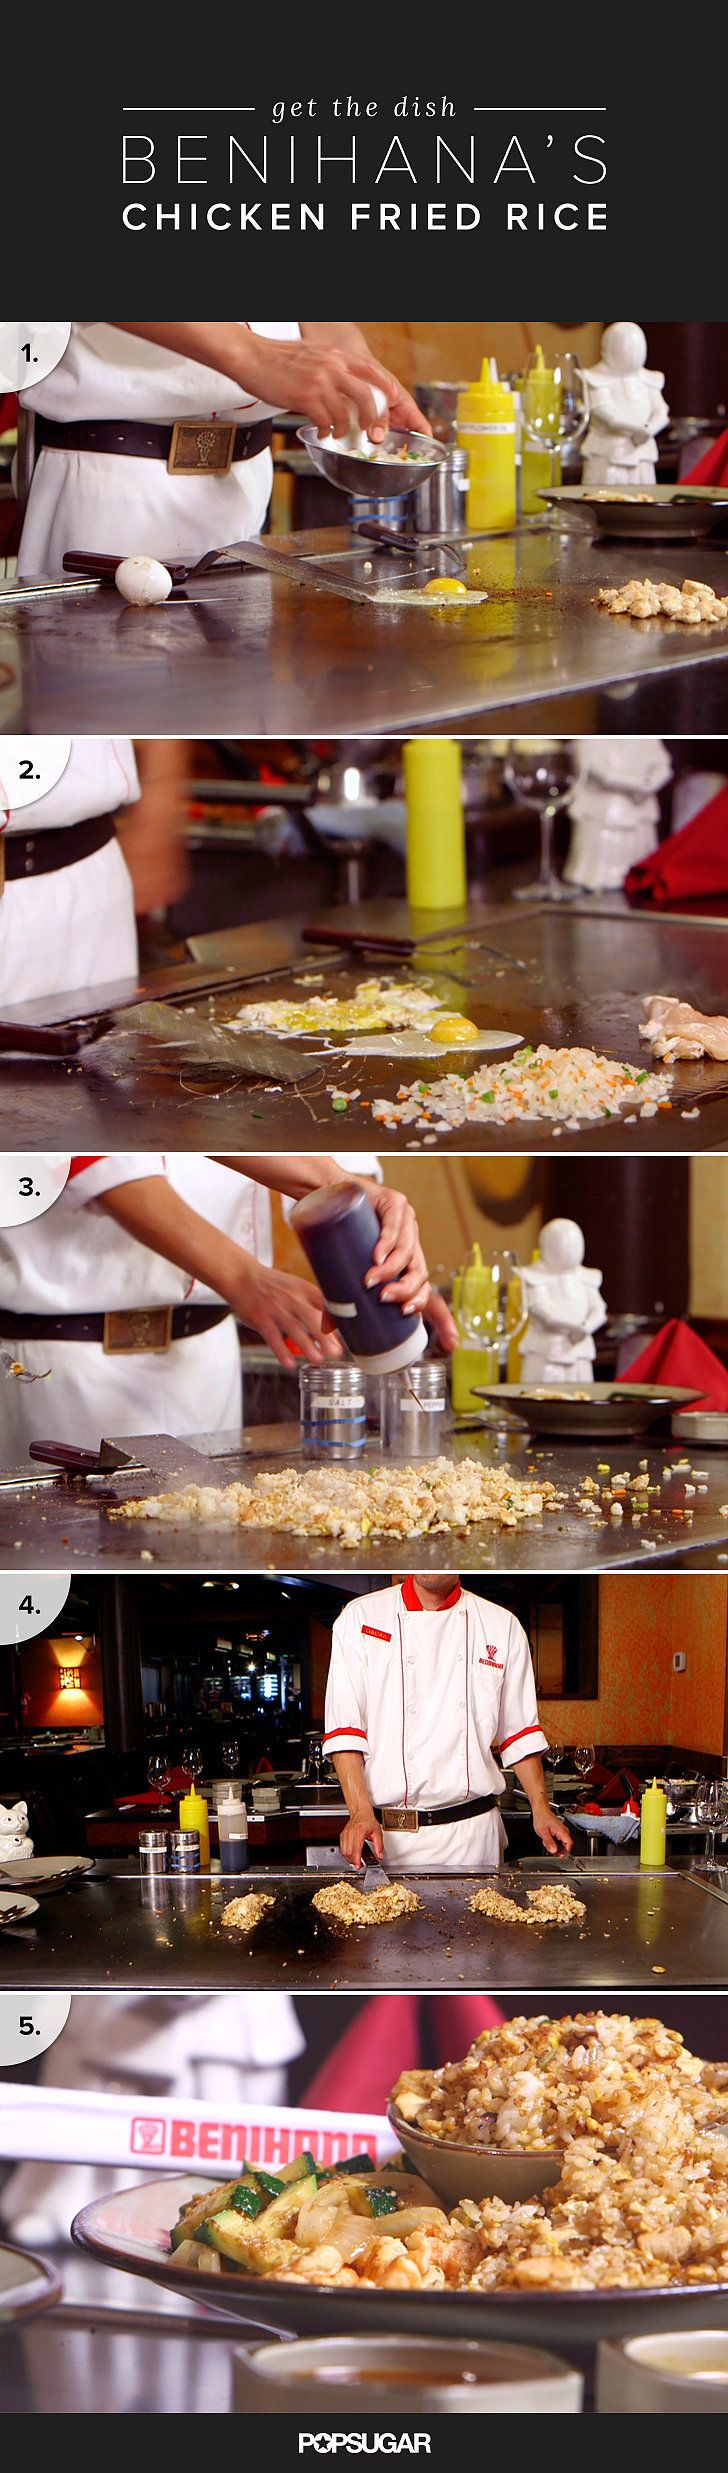 Recipe for Benihana's Chicken Fried Rice, Including the secret to Benihana's iconic onion volcano: (Lucilles Apple Butter)